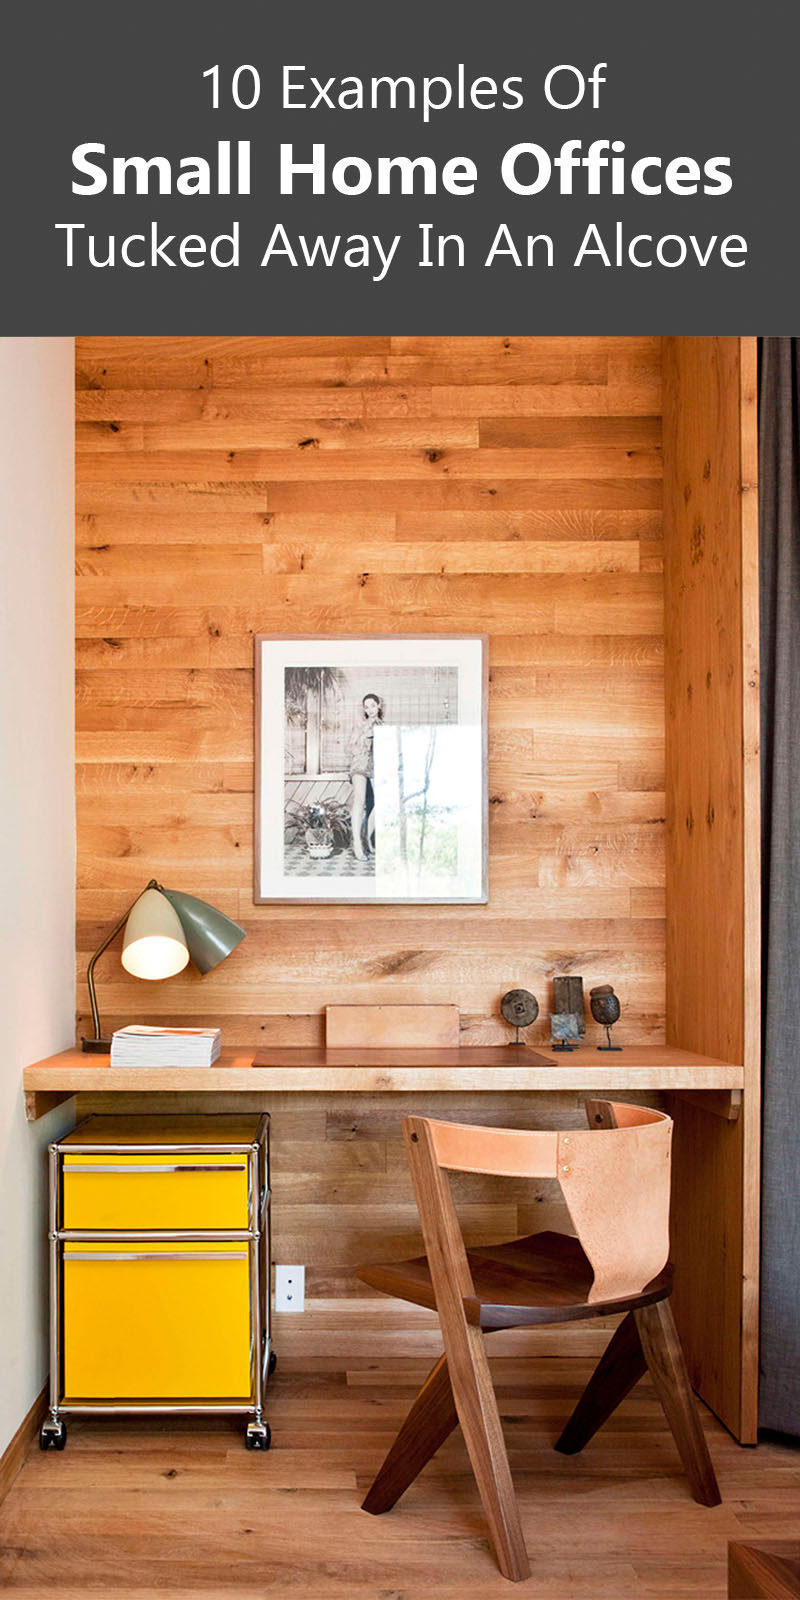 Small Home Office Idea - Make use of a small space and tuck your desk away in an alcove